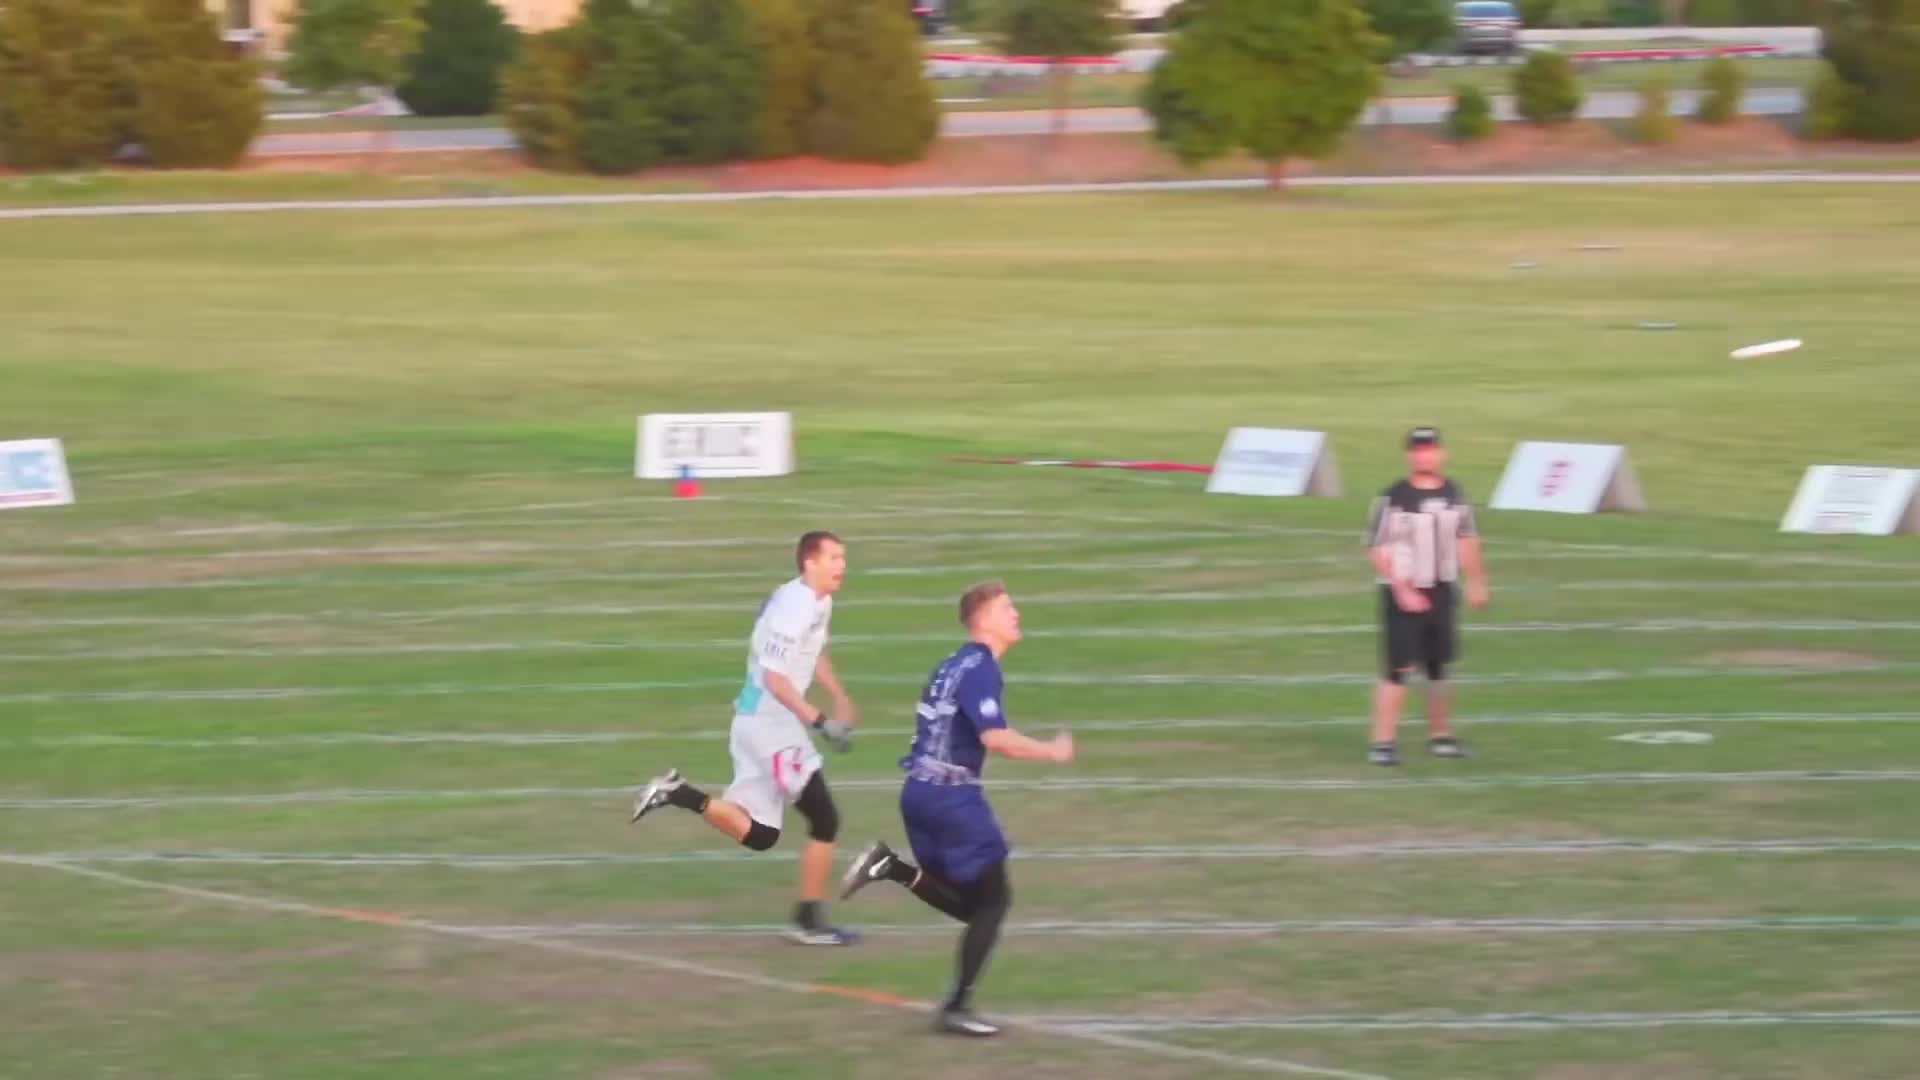 Sports, TheAUDLChannel, american ultimate disc league, audl, highlight reel, highlights, sports, theaudlchannel, top 10, ultimate, ultimate frisbee, Joel Clutton Layout Swat GIFs